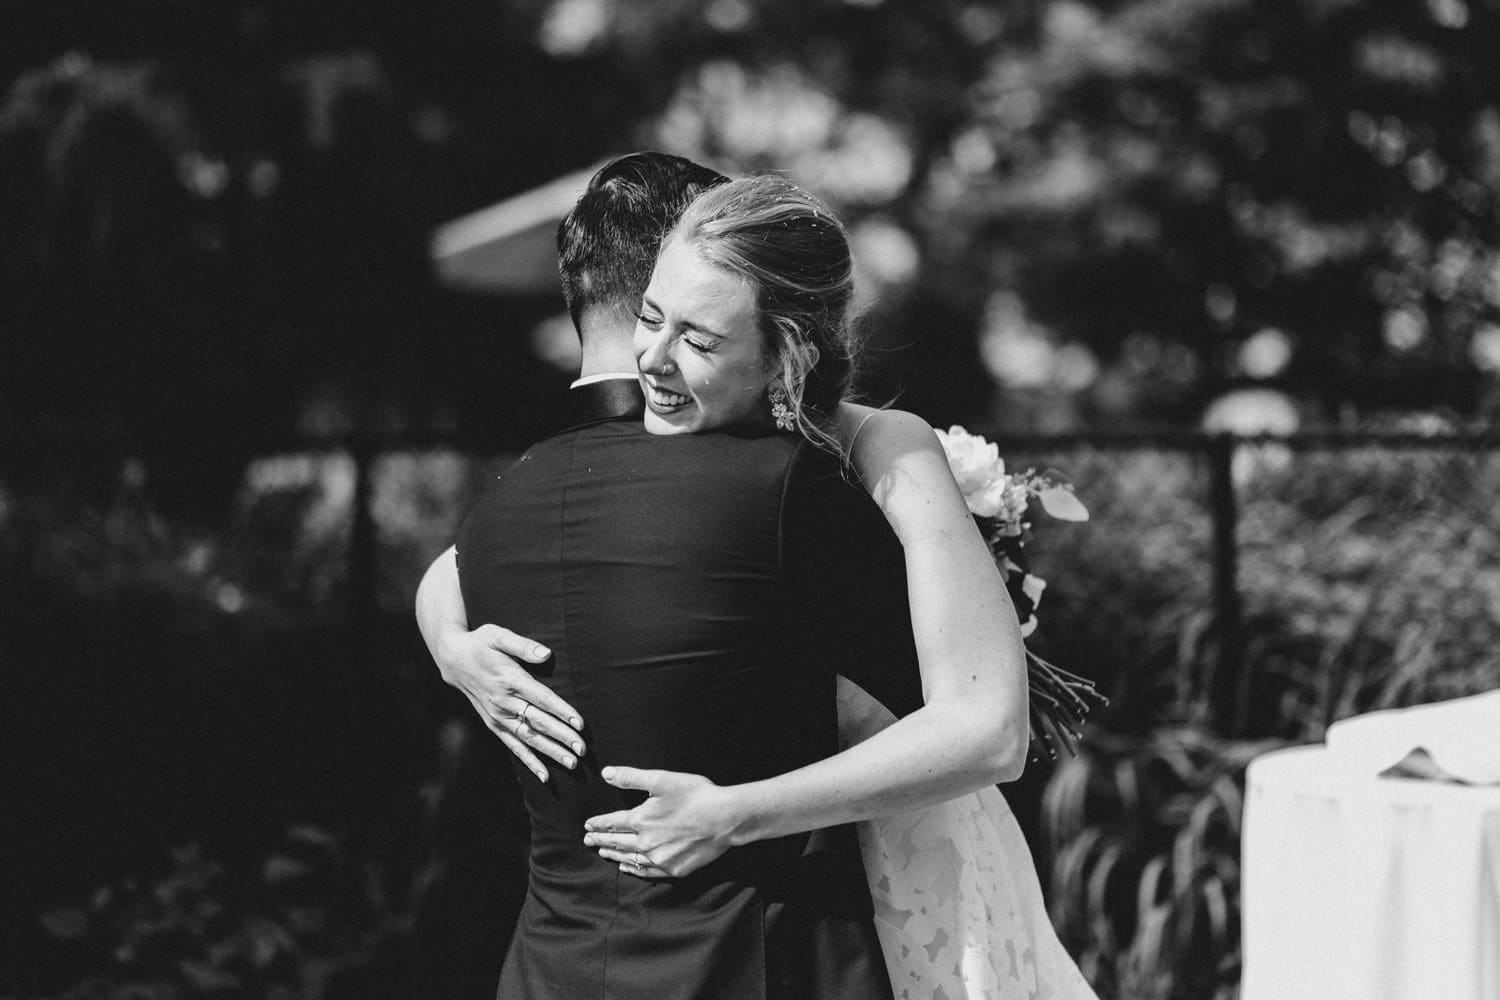 bride and groom hug and cry together after ceremony - carley teresa photography